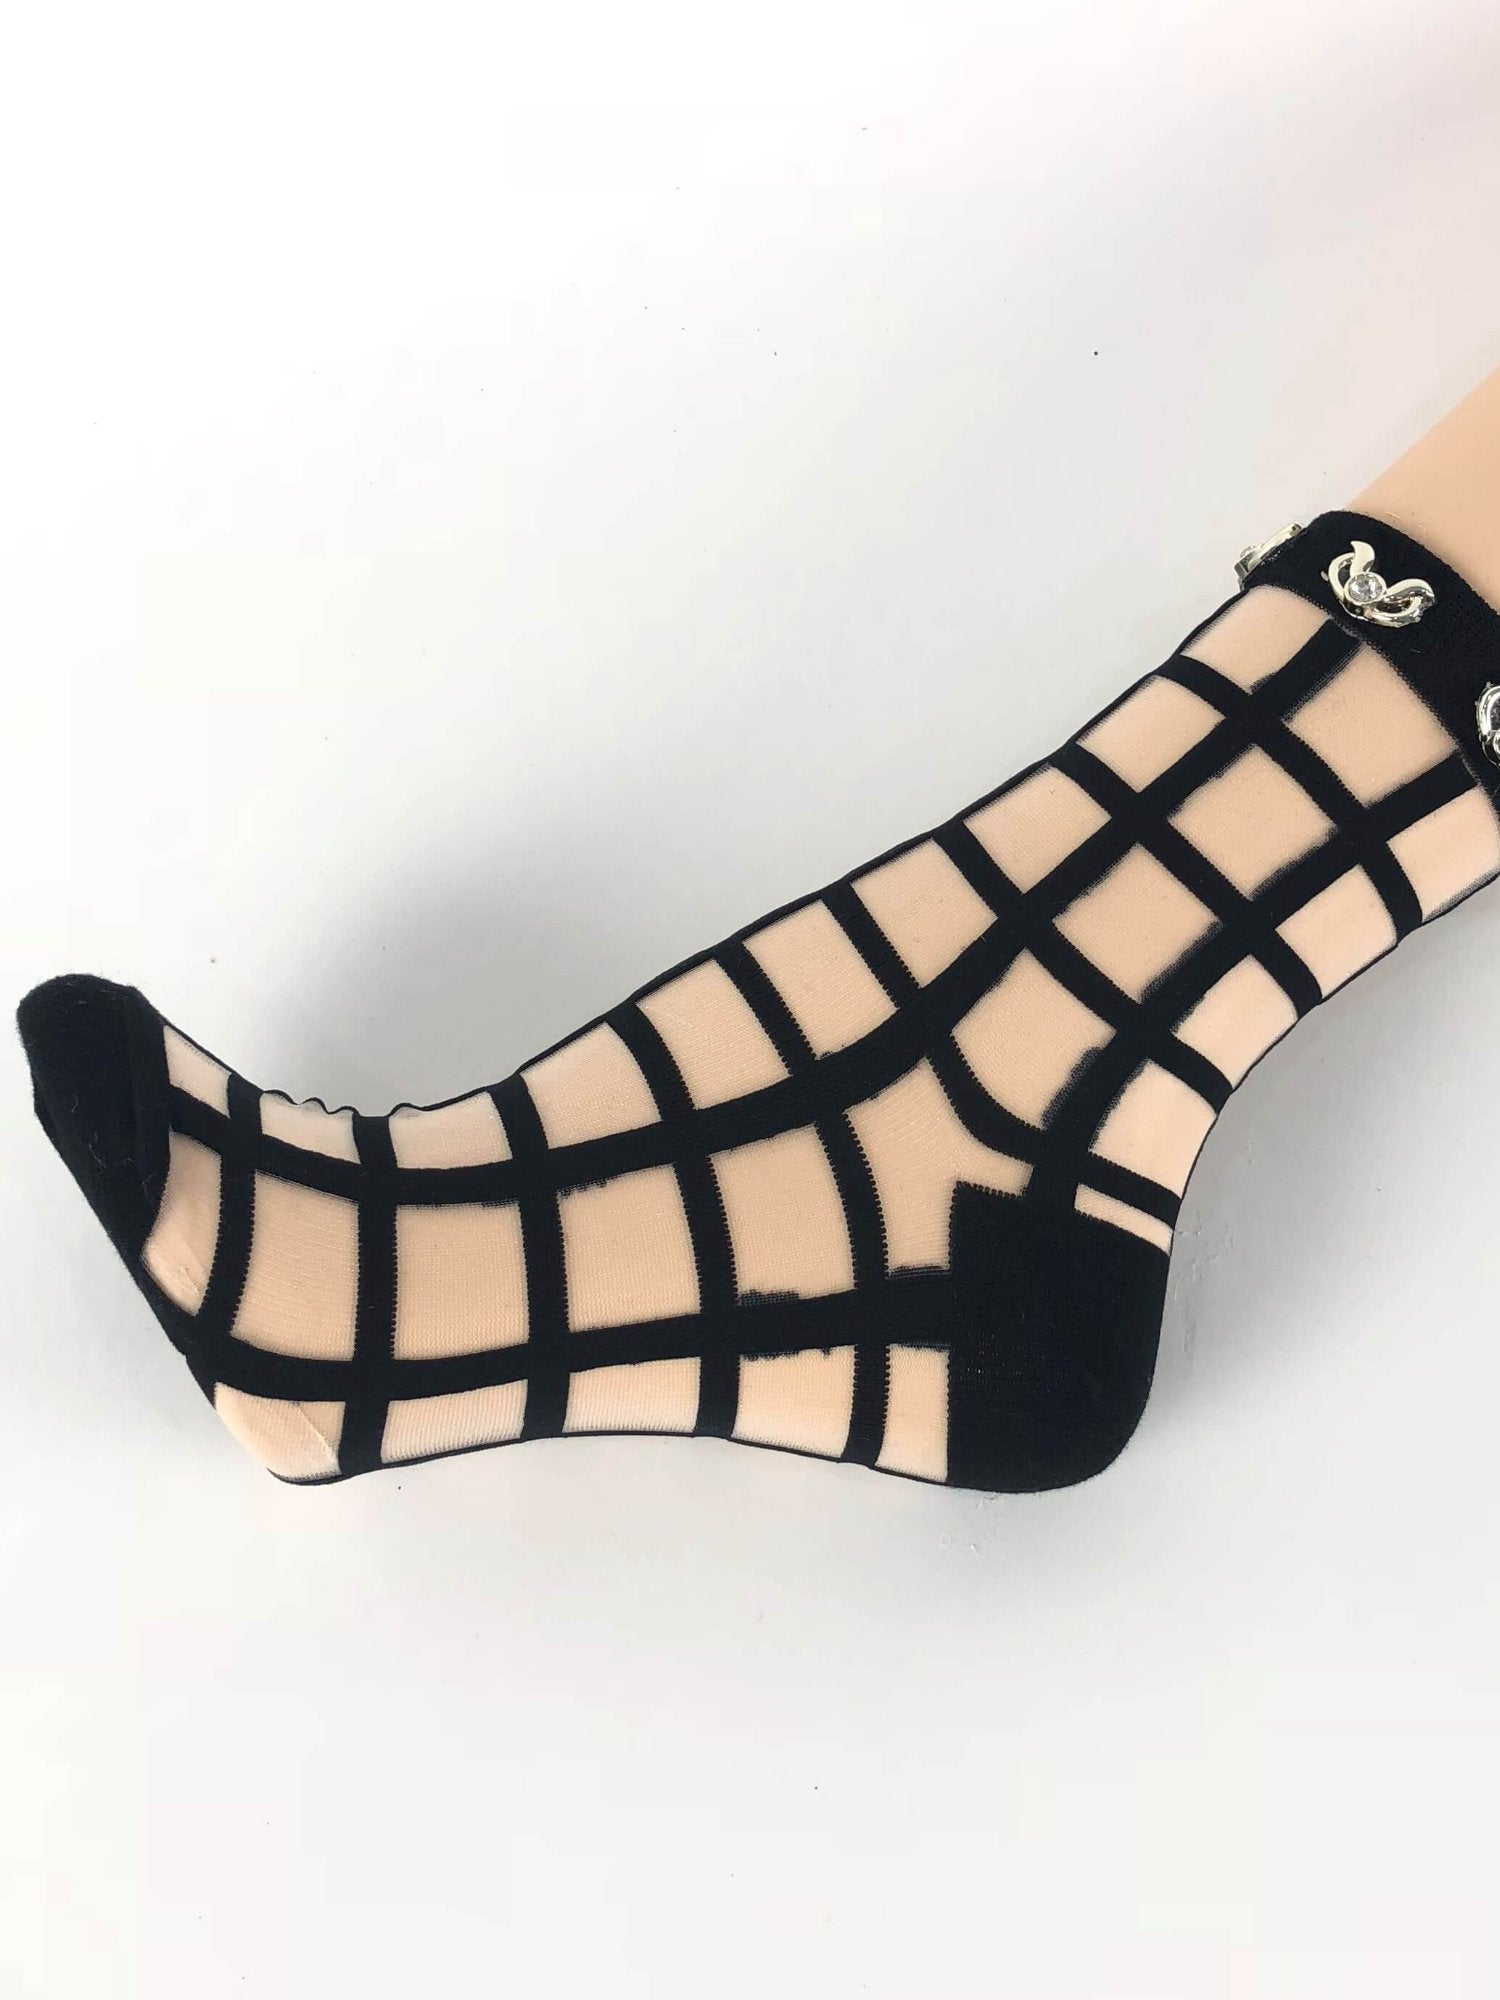 Black Square Patterned Sheer Socks - Global Trendz Fashion®